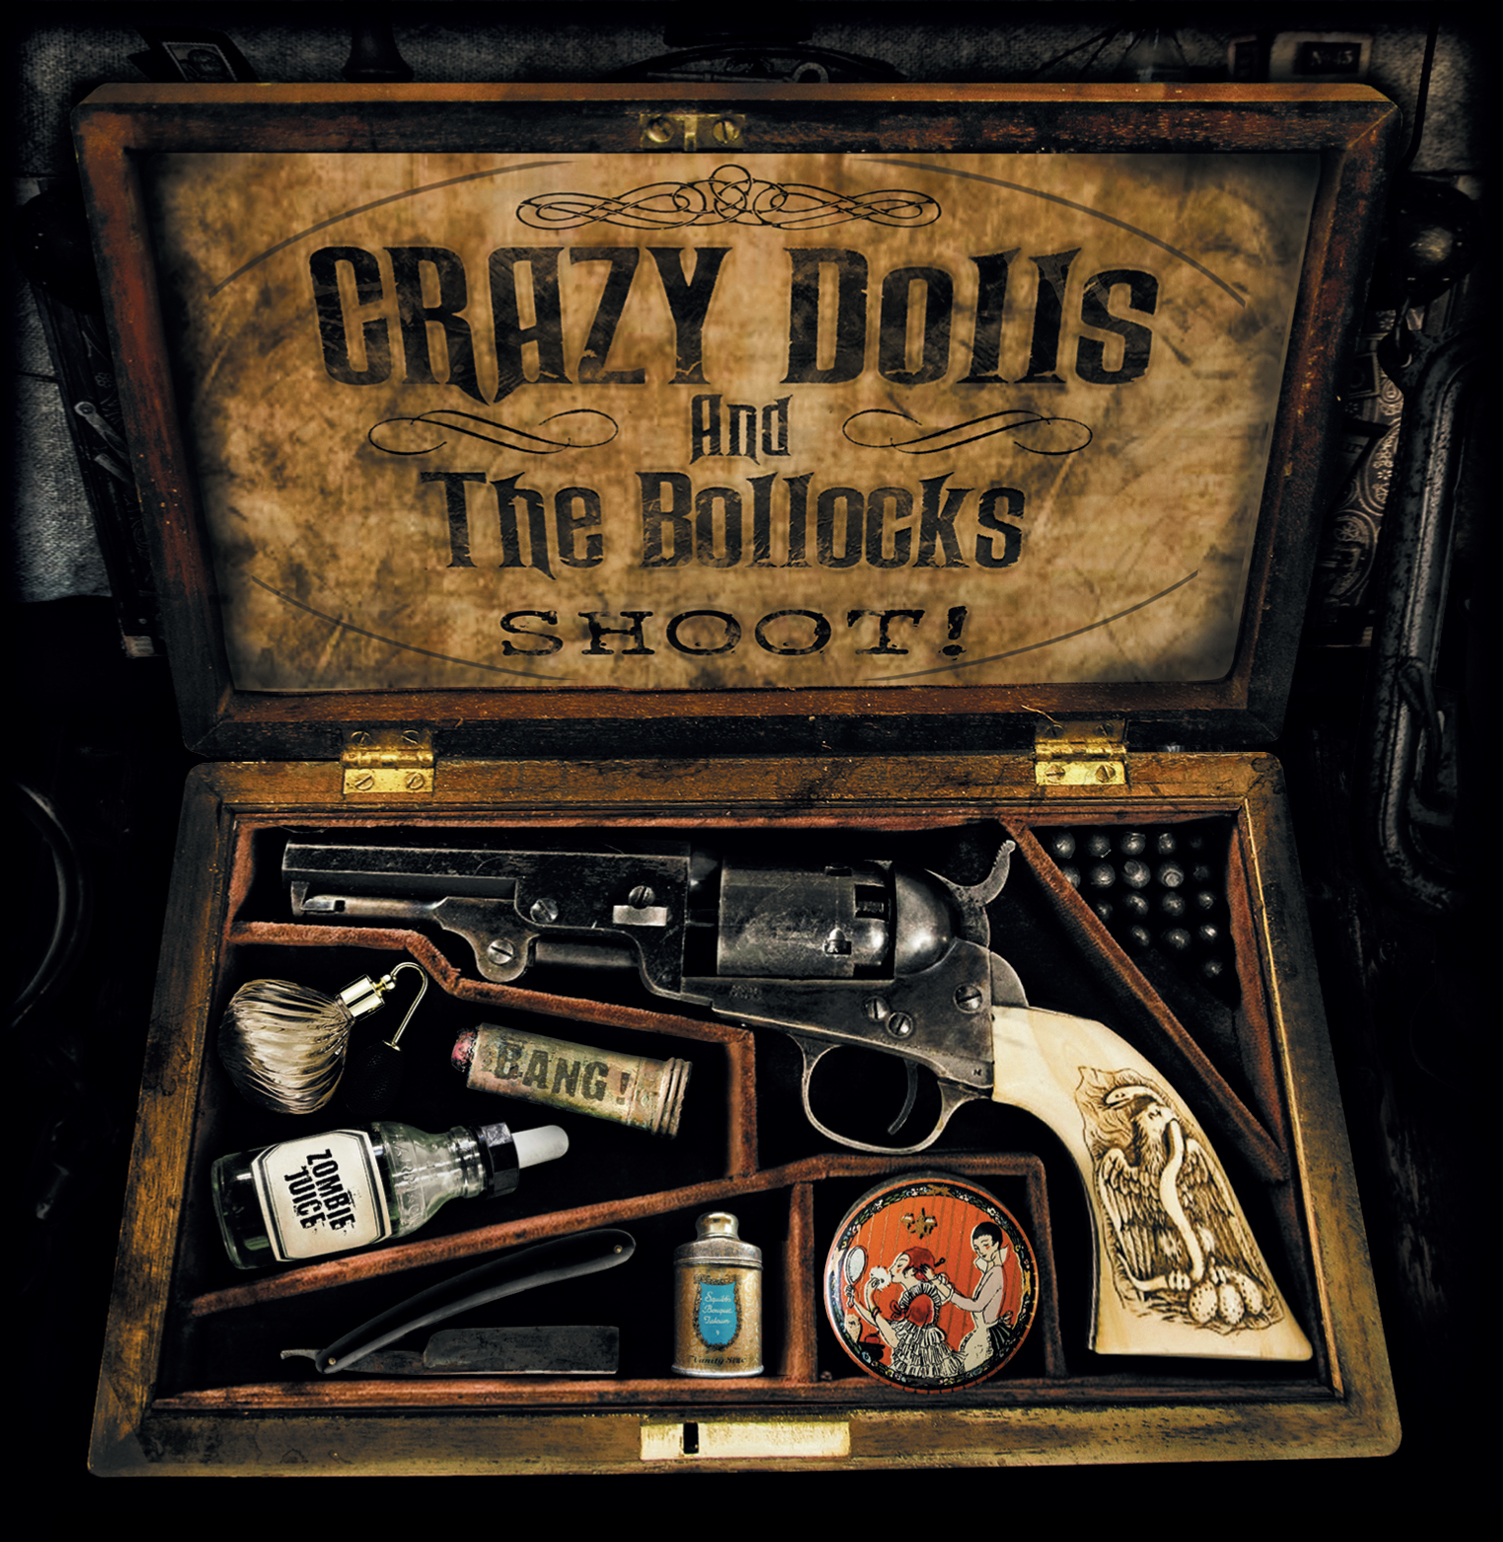 Crazy Dolls & The Bollocks